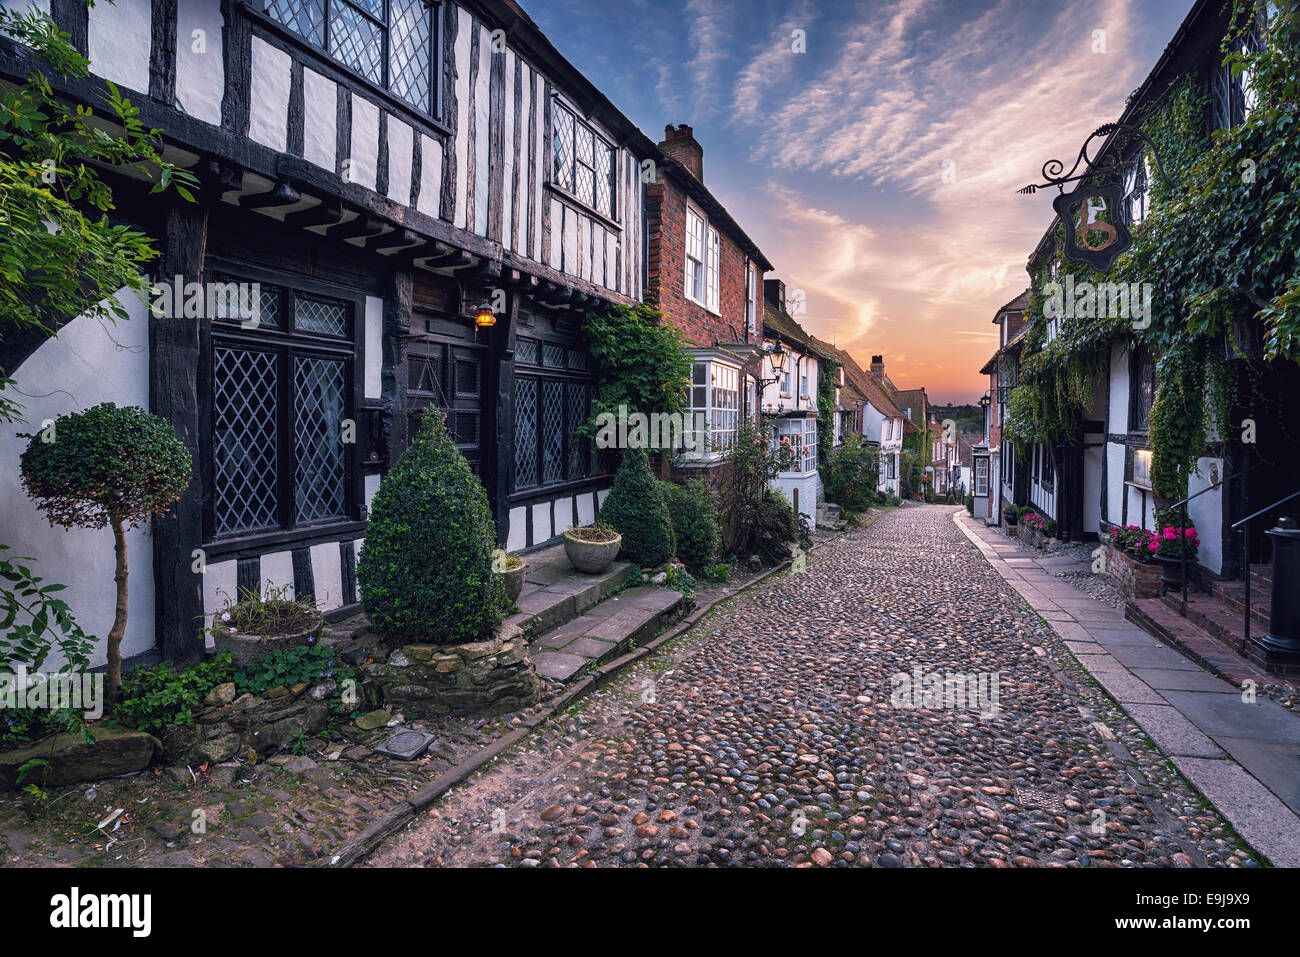 Beautiful tudor style half timbered houses lining a cobbled street in Rye, Sussex, retro vintage effect. - Stock Image